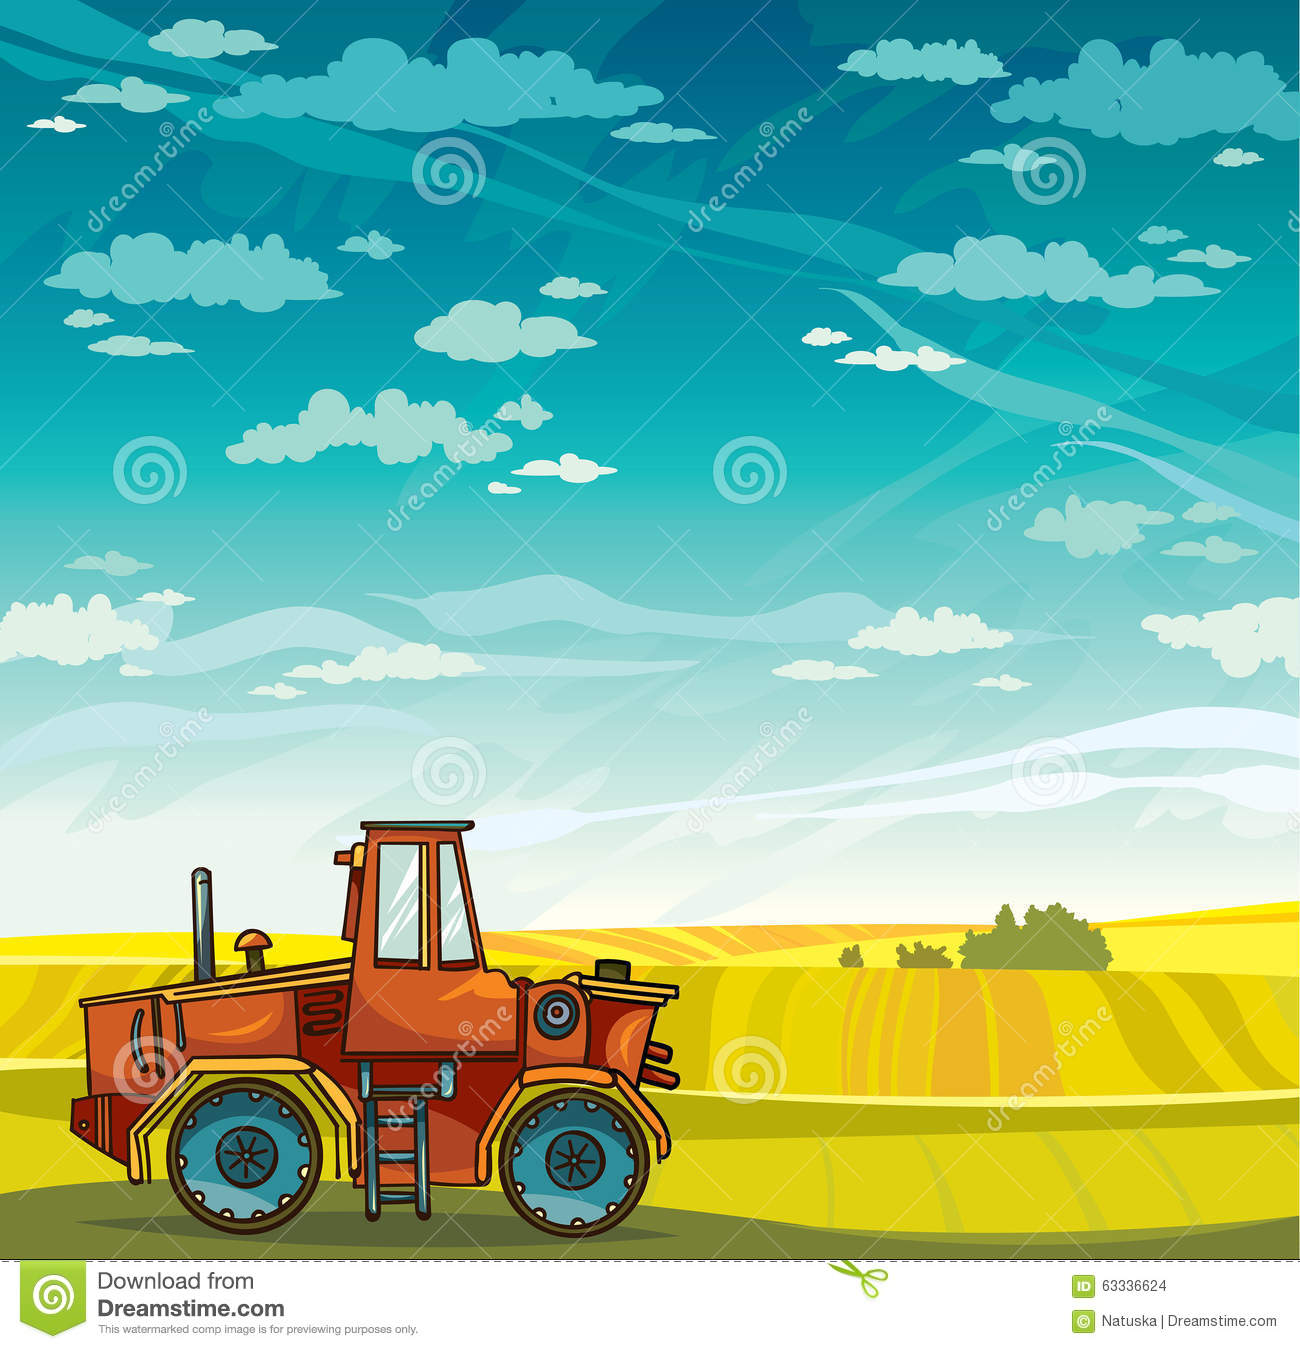 Up The Tractor Green Tractor With Bucket Cartoon : Tractor and field vector rural landscape stock